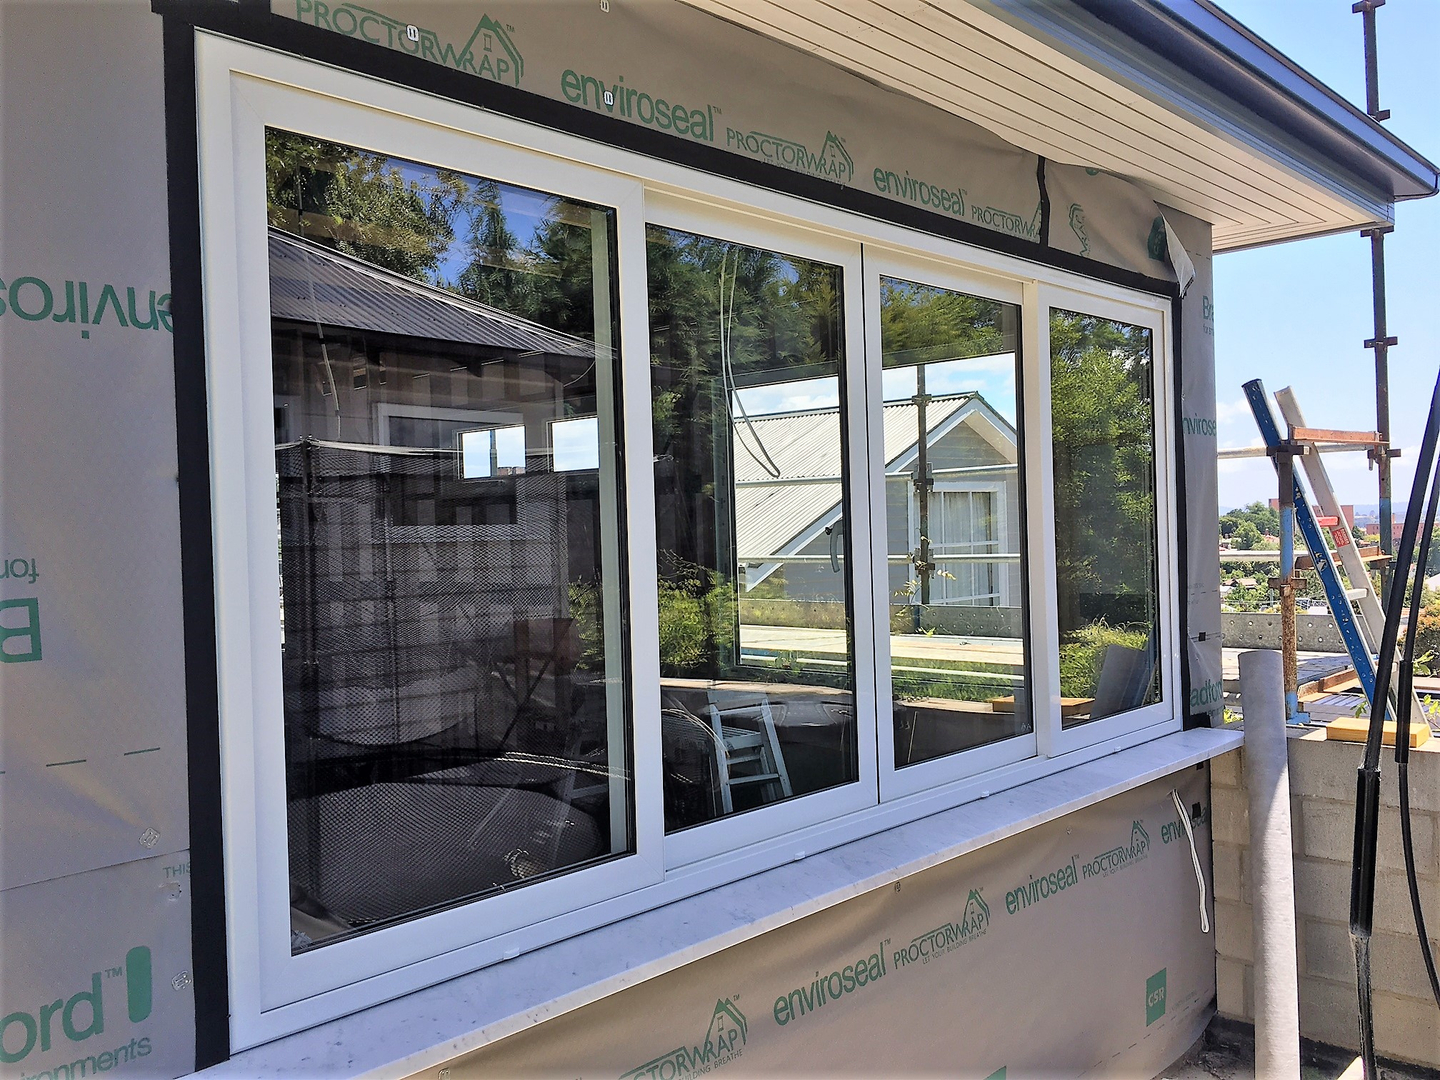 The best choice for tasmania is our industry leading upvc windows eco friendly economical to produce save over 50 on energy bills and 100 recyclable rubansaba